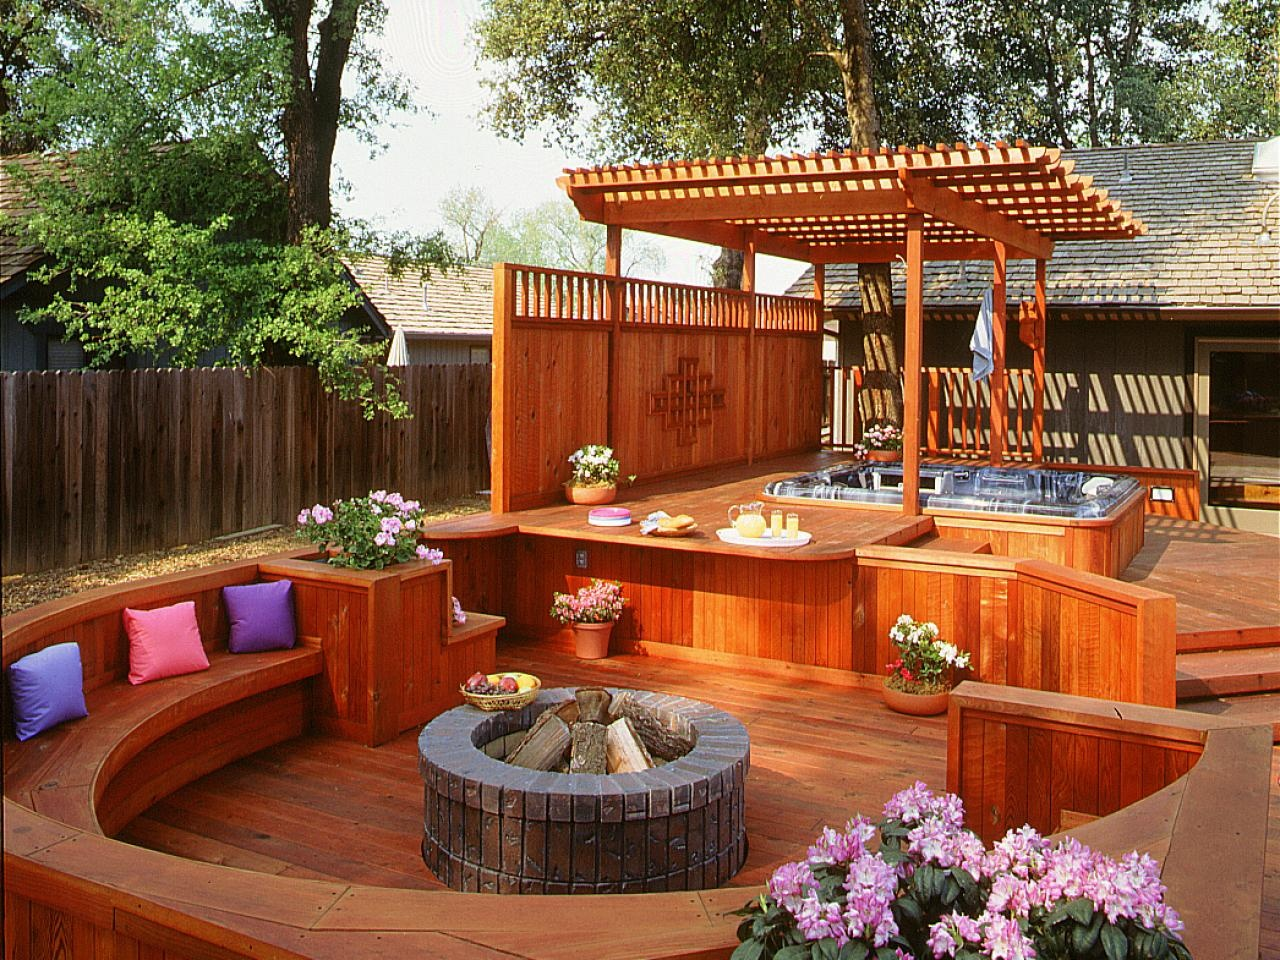 50-gorgeous-decks-and-patios-with-hot-tubs.